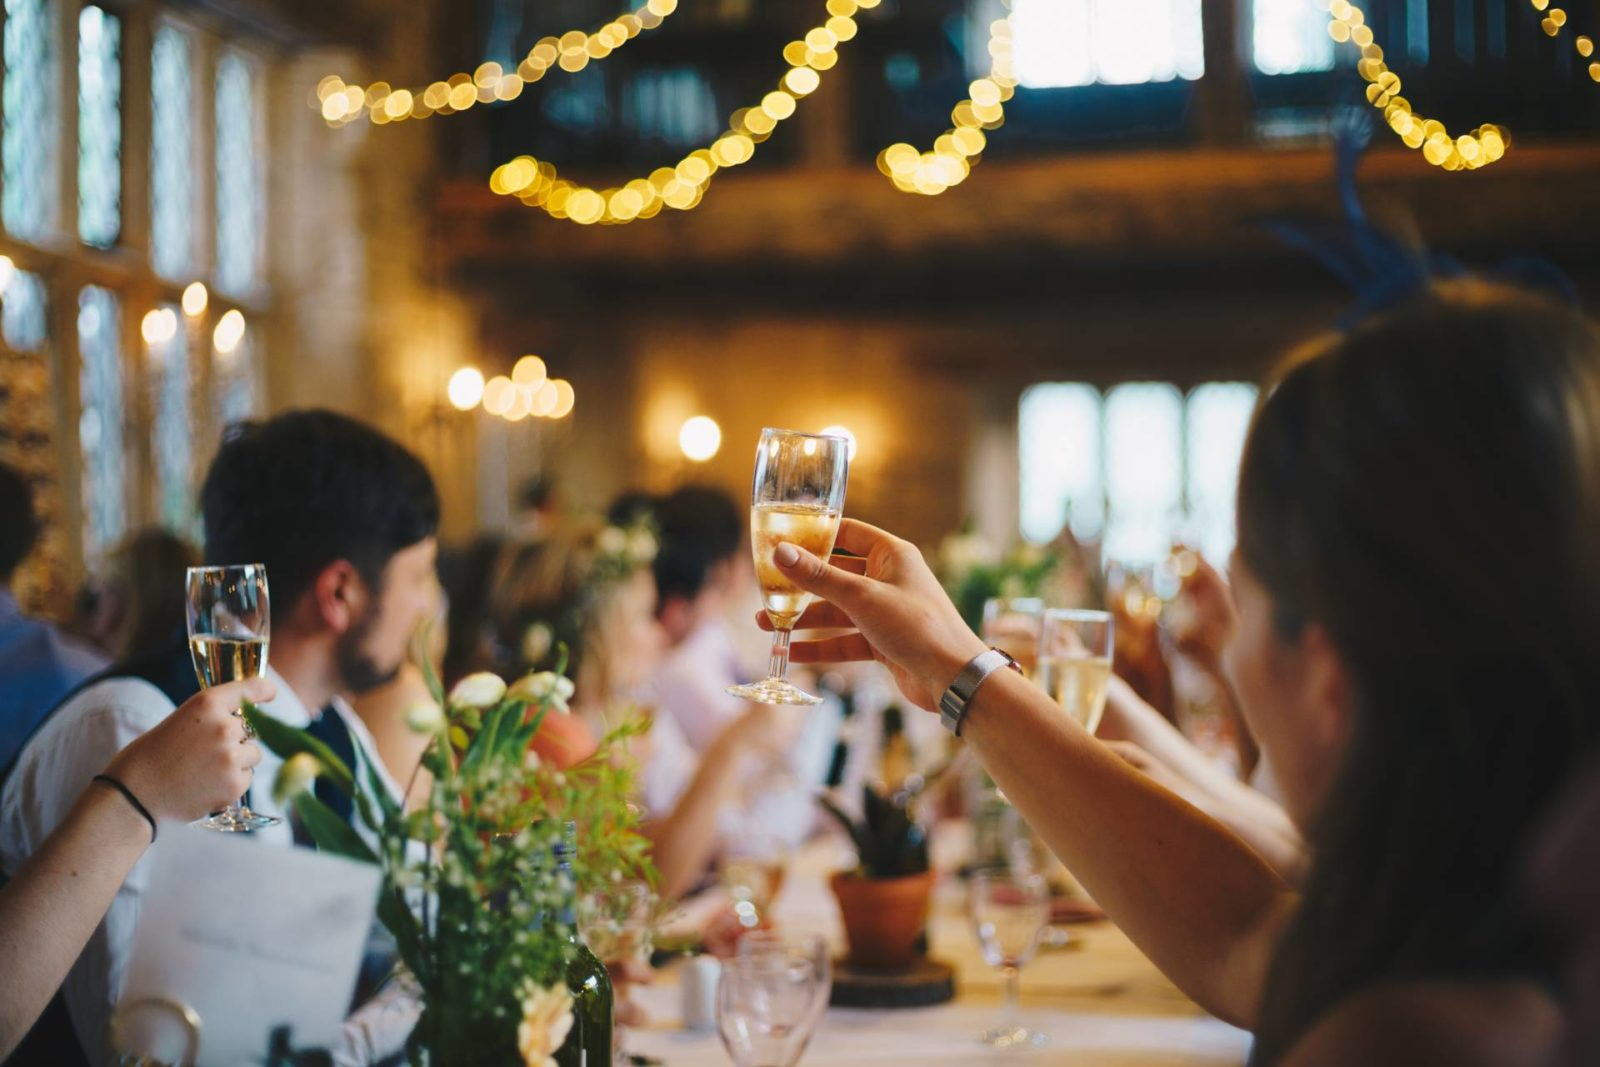 DJ Vs Live Band: Which Is Better For Your Wedding?